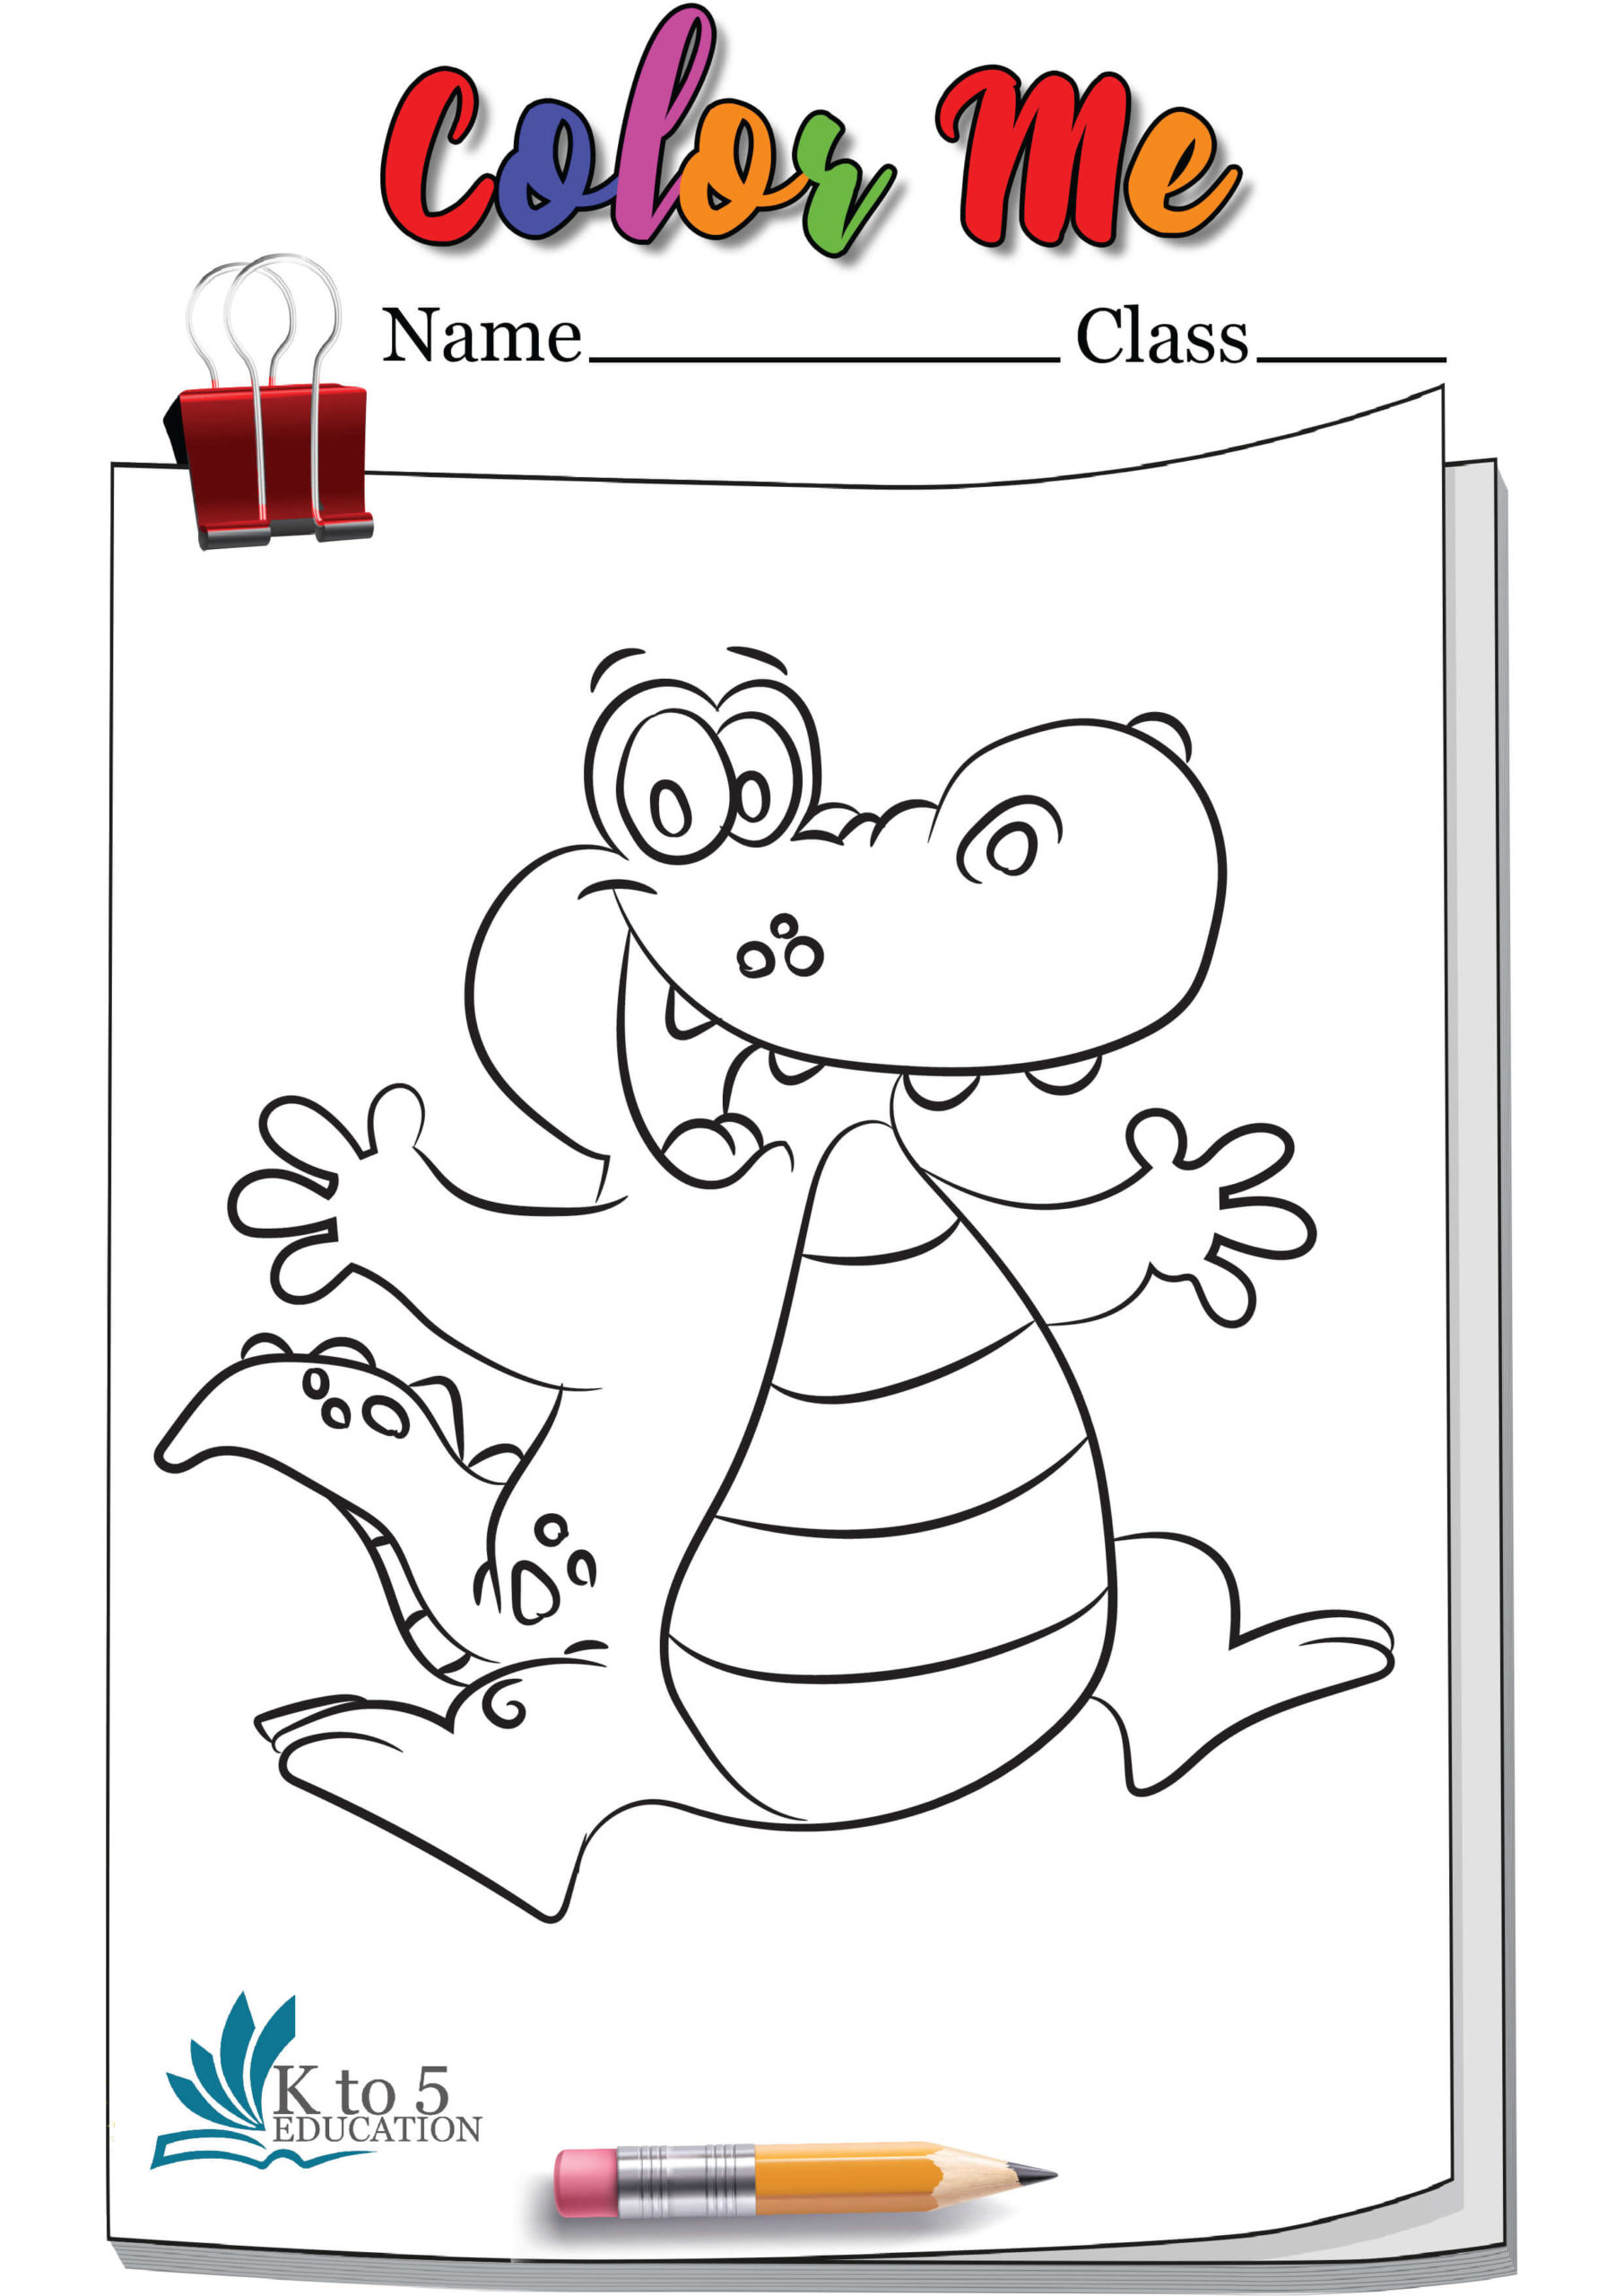 Cheerful crocodile coloring worksheet